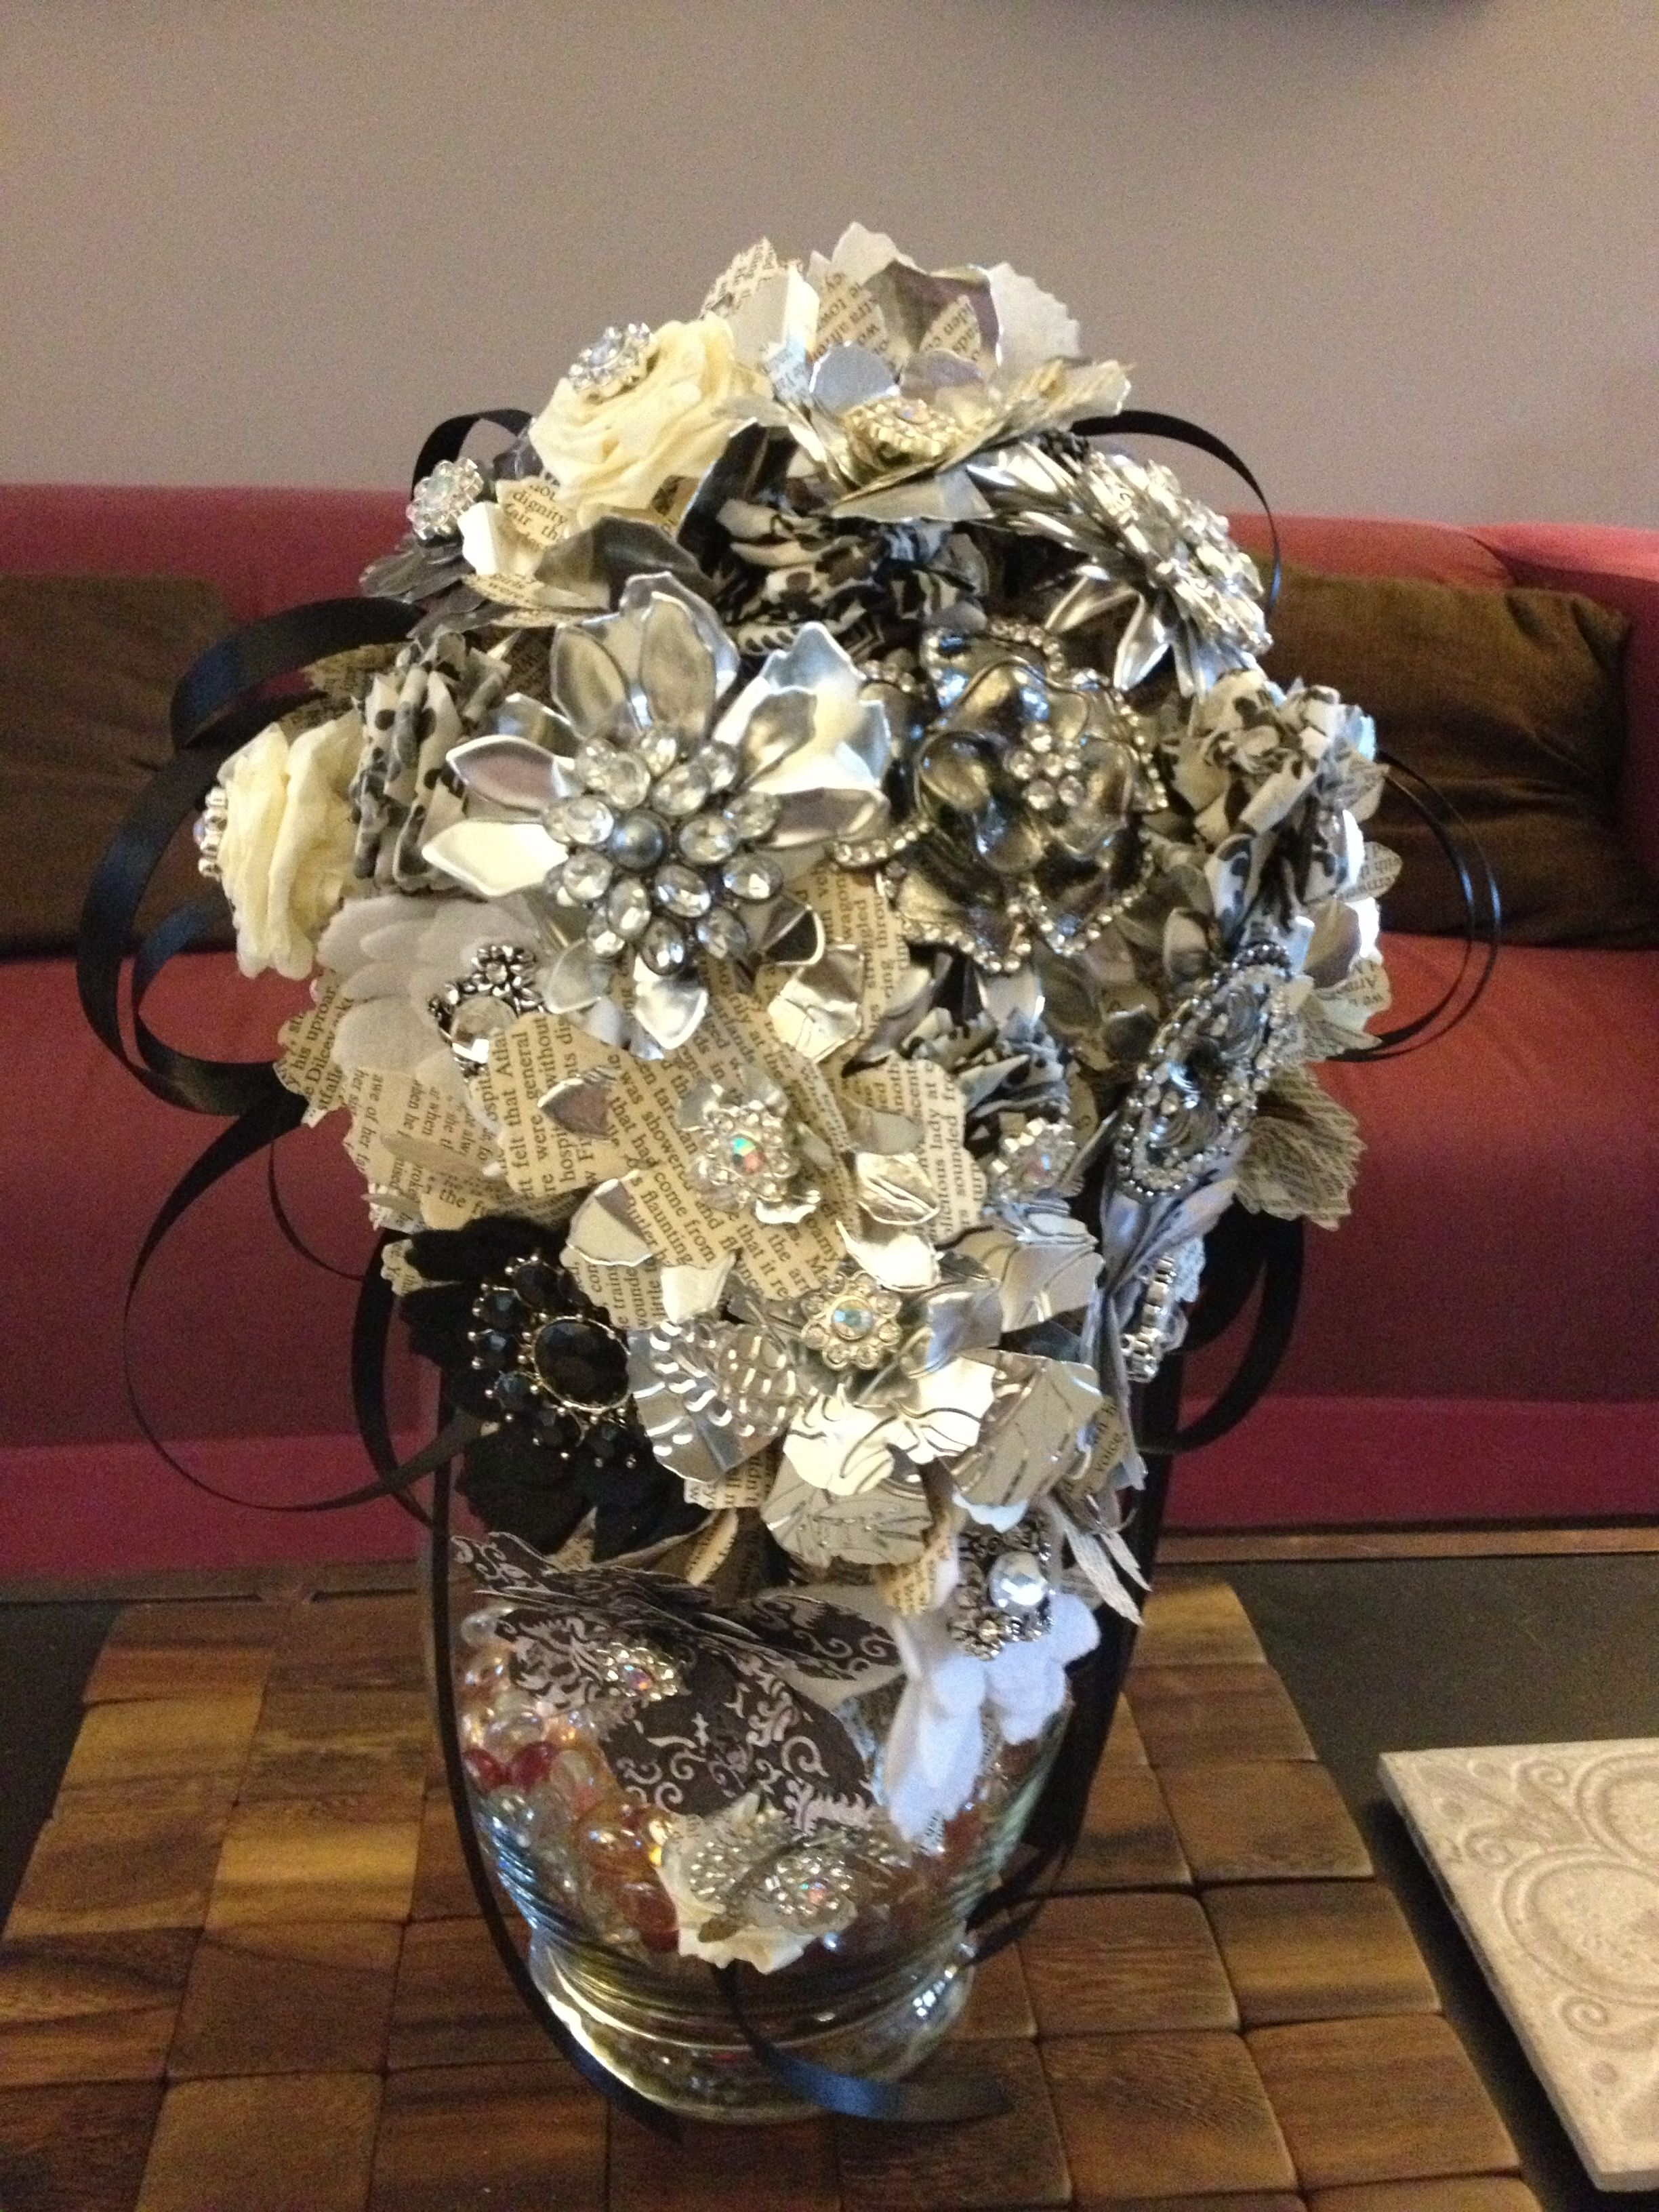 Like the idea of using book pages in wedding centerpieces but it